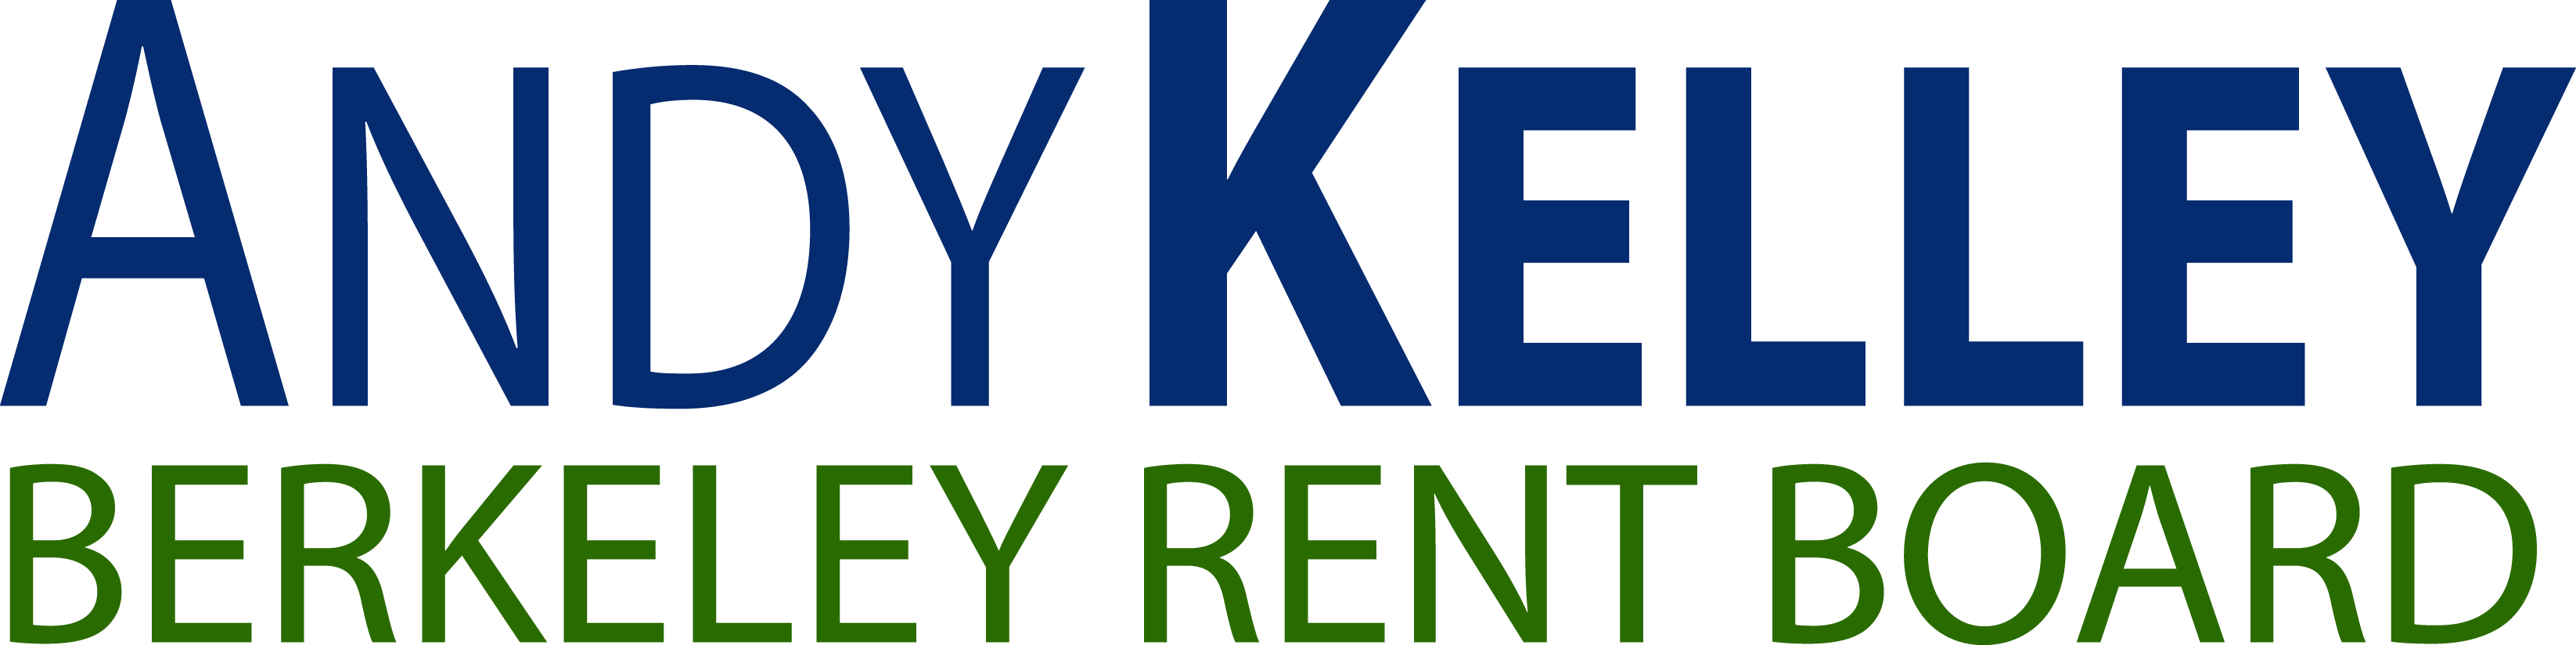 Andy Kelley for Berkeley Rent Board